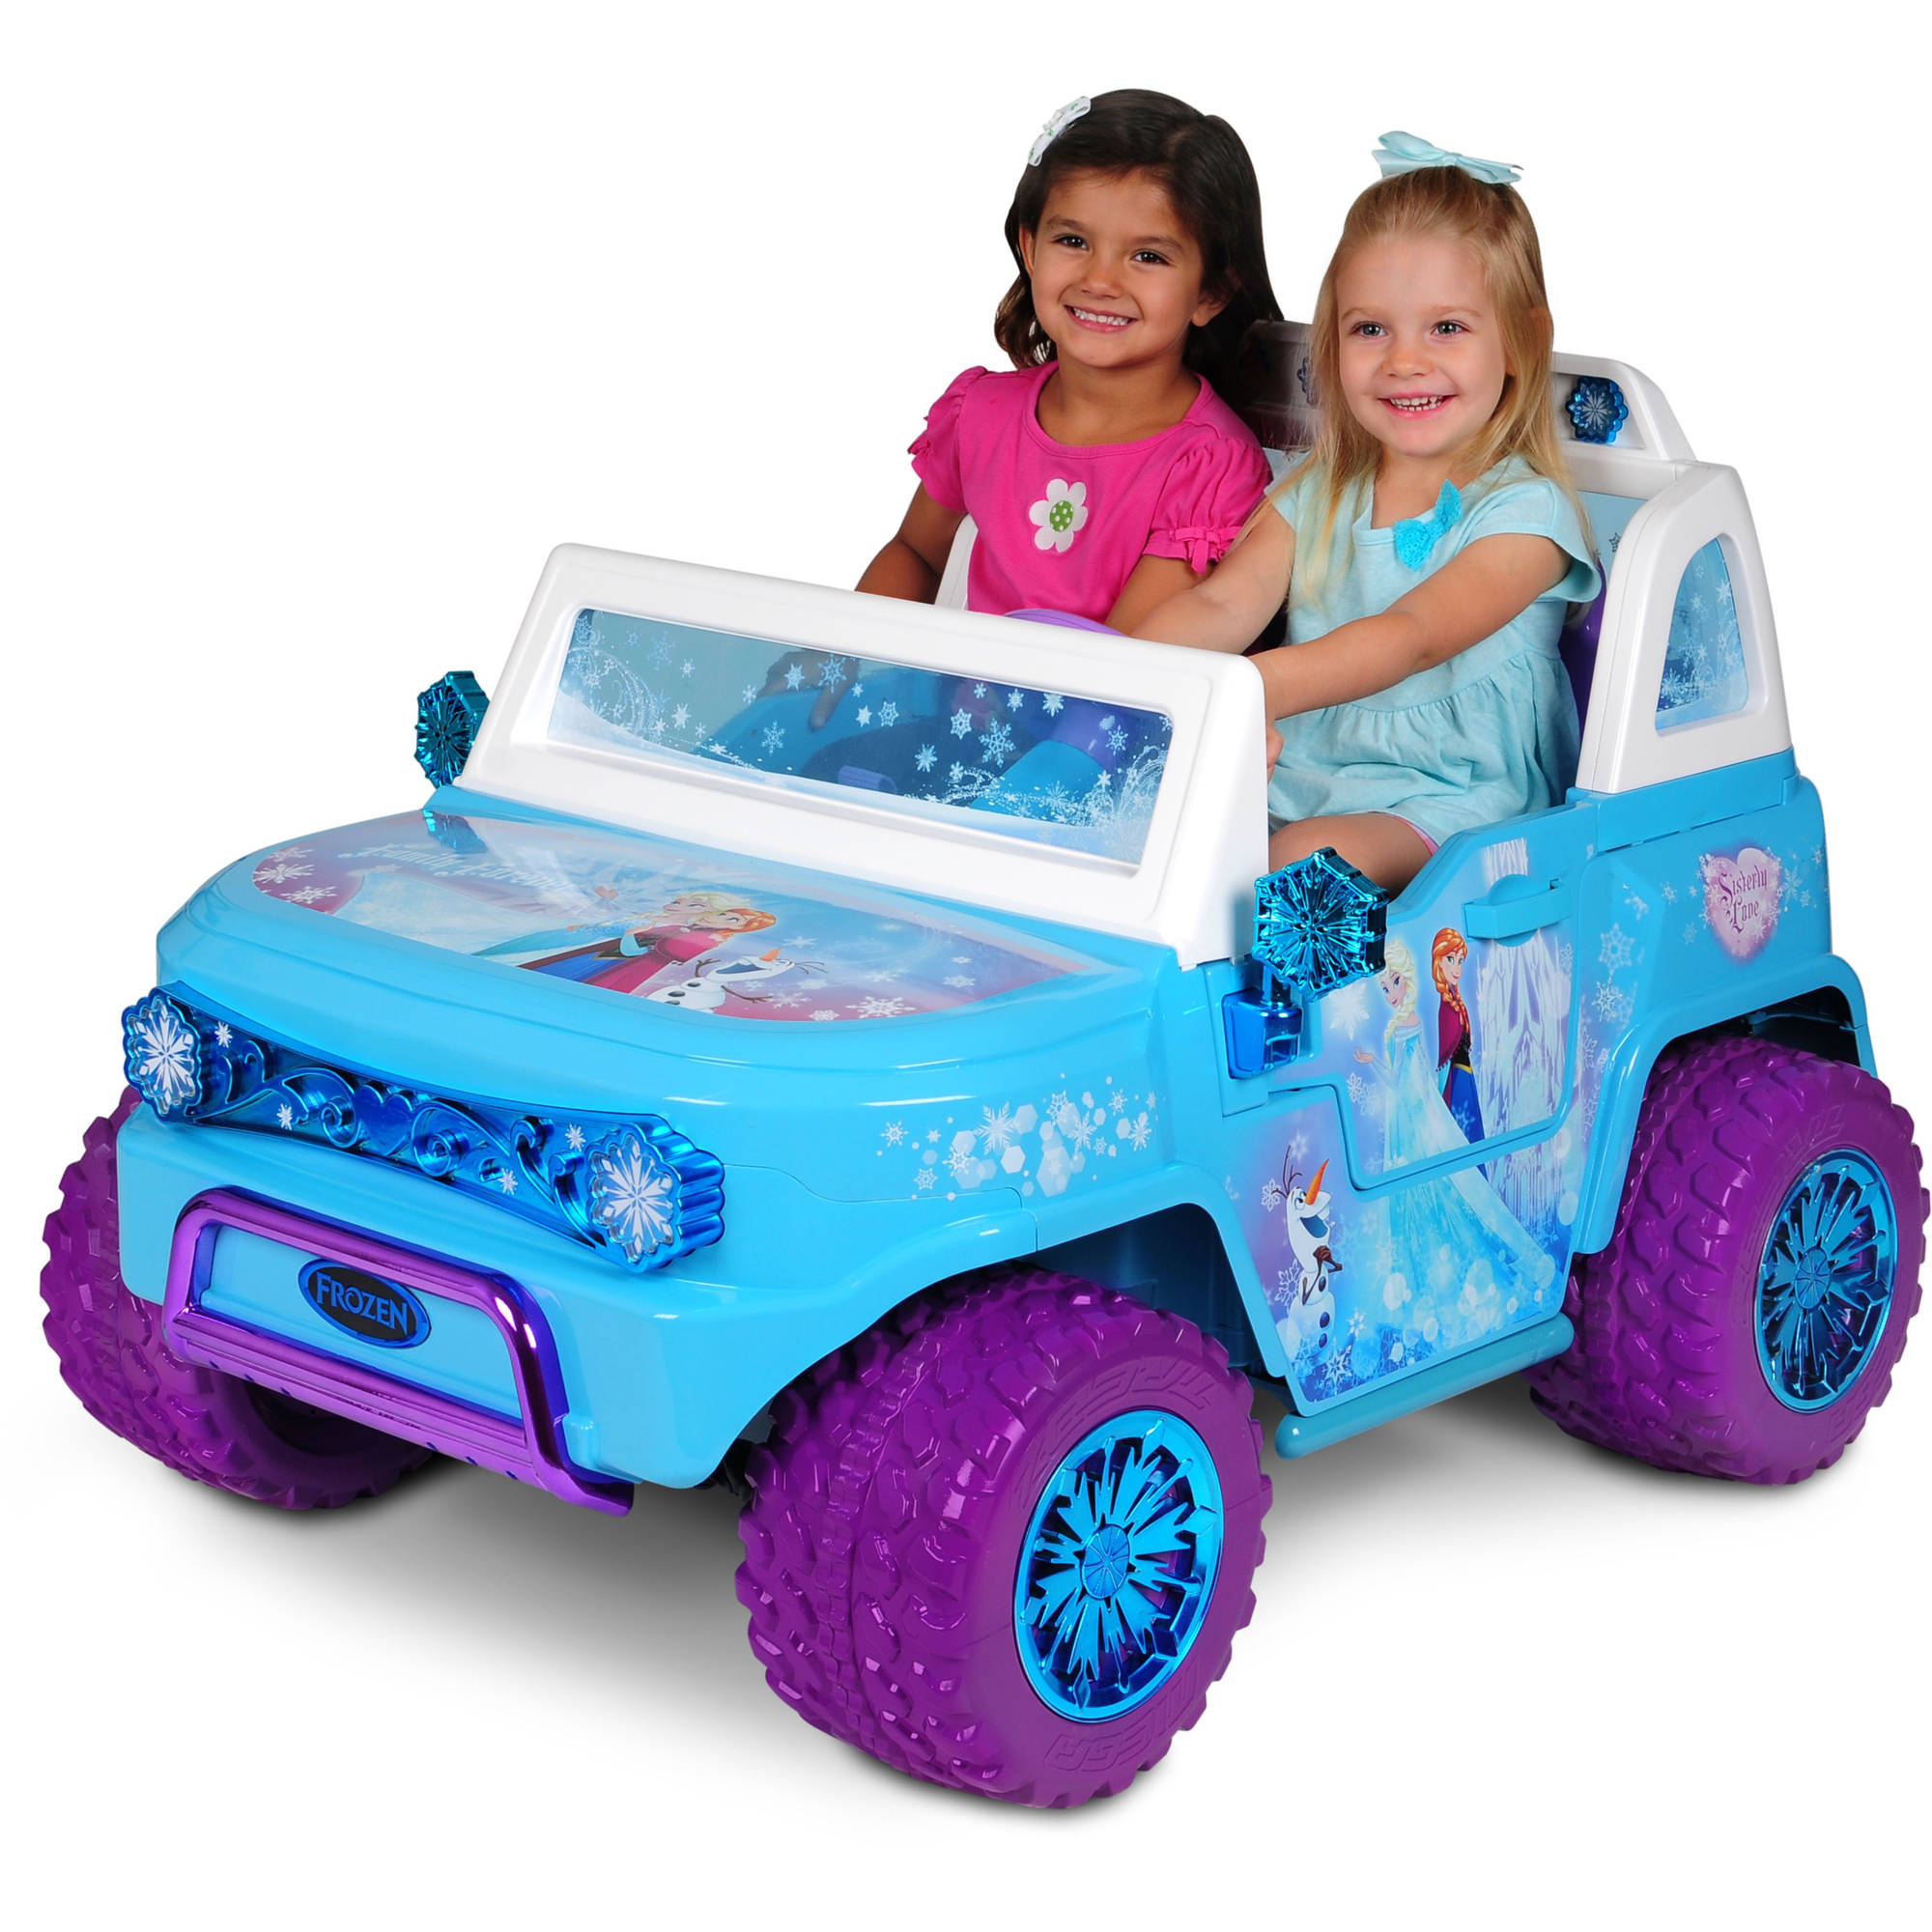 Disney Frozen SUV 12V Battery-Operated Ride-On